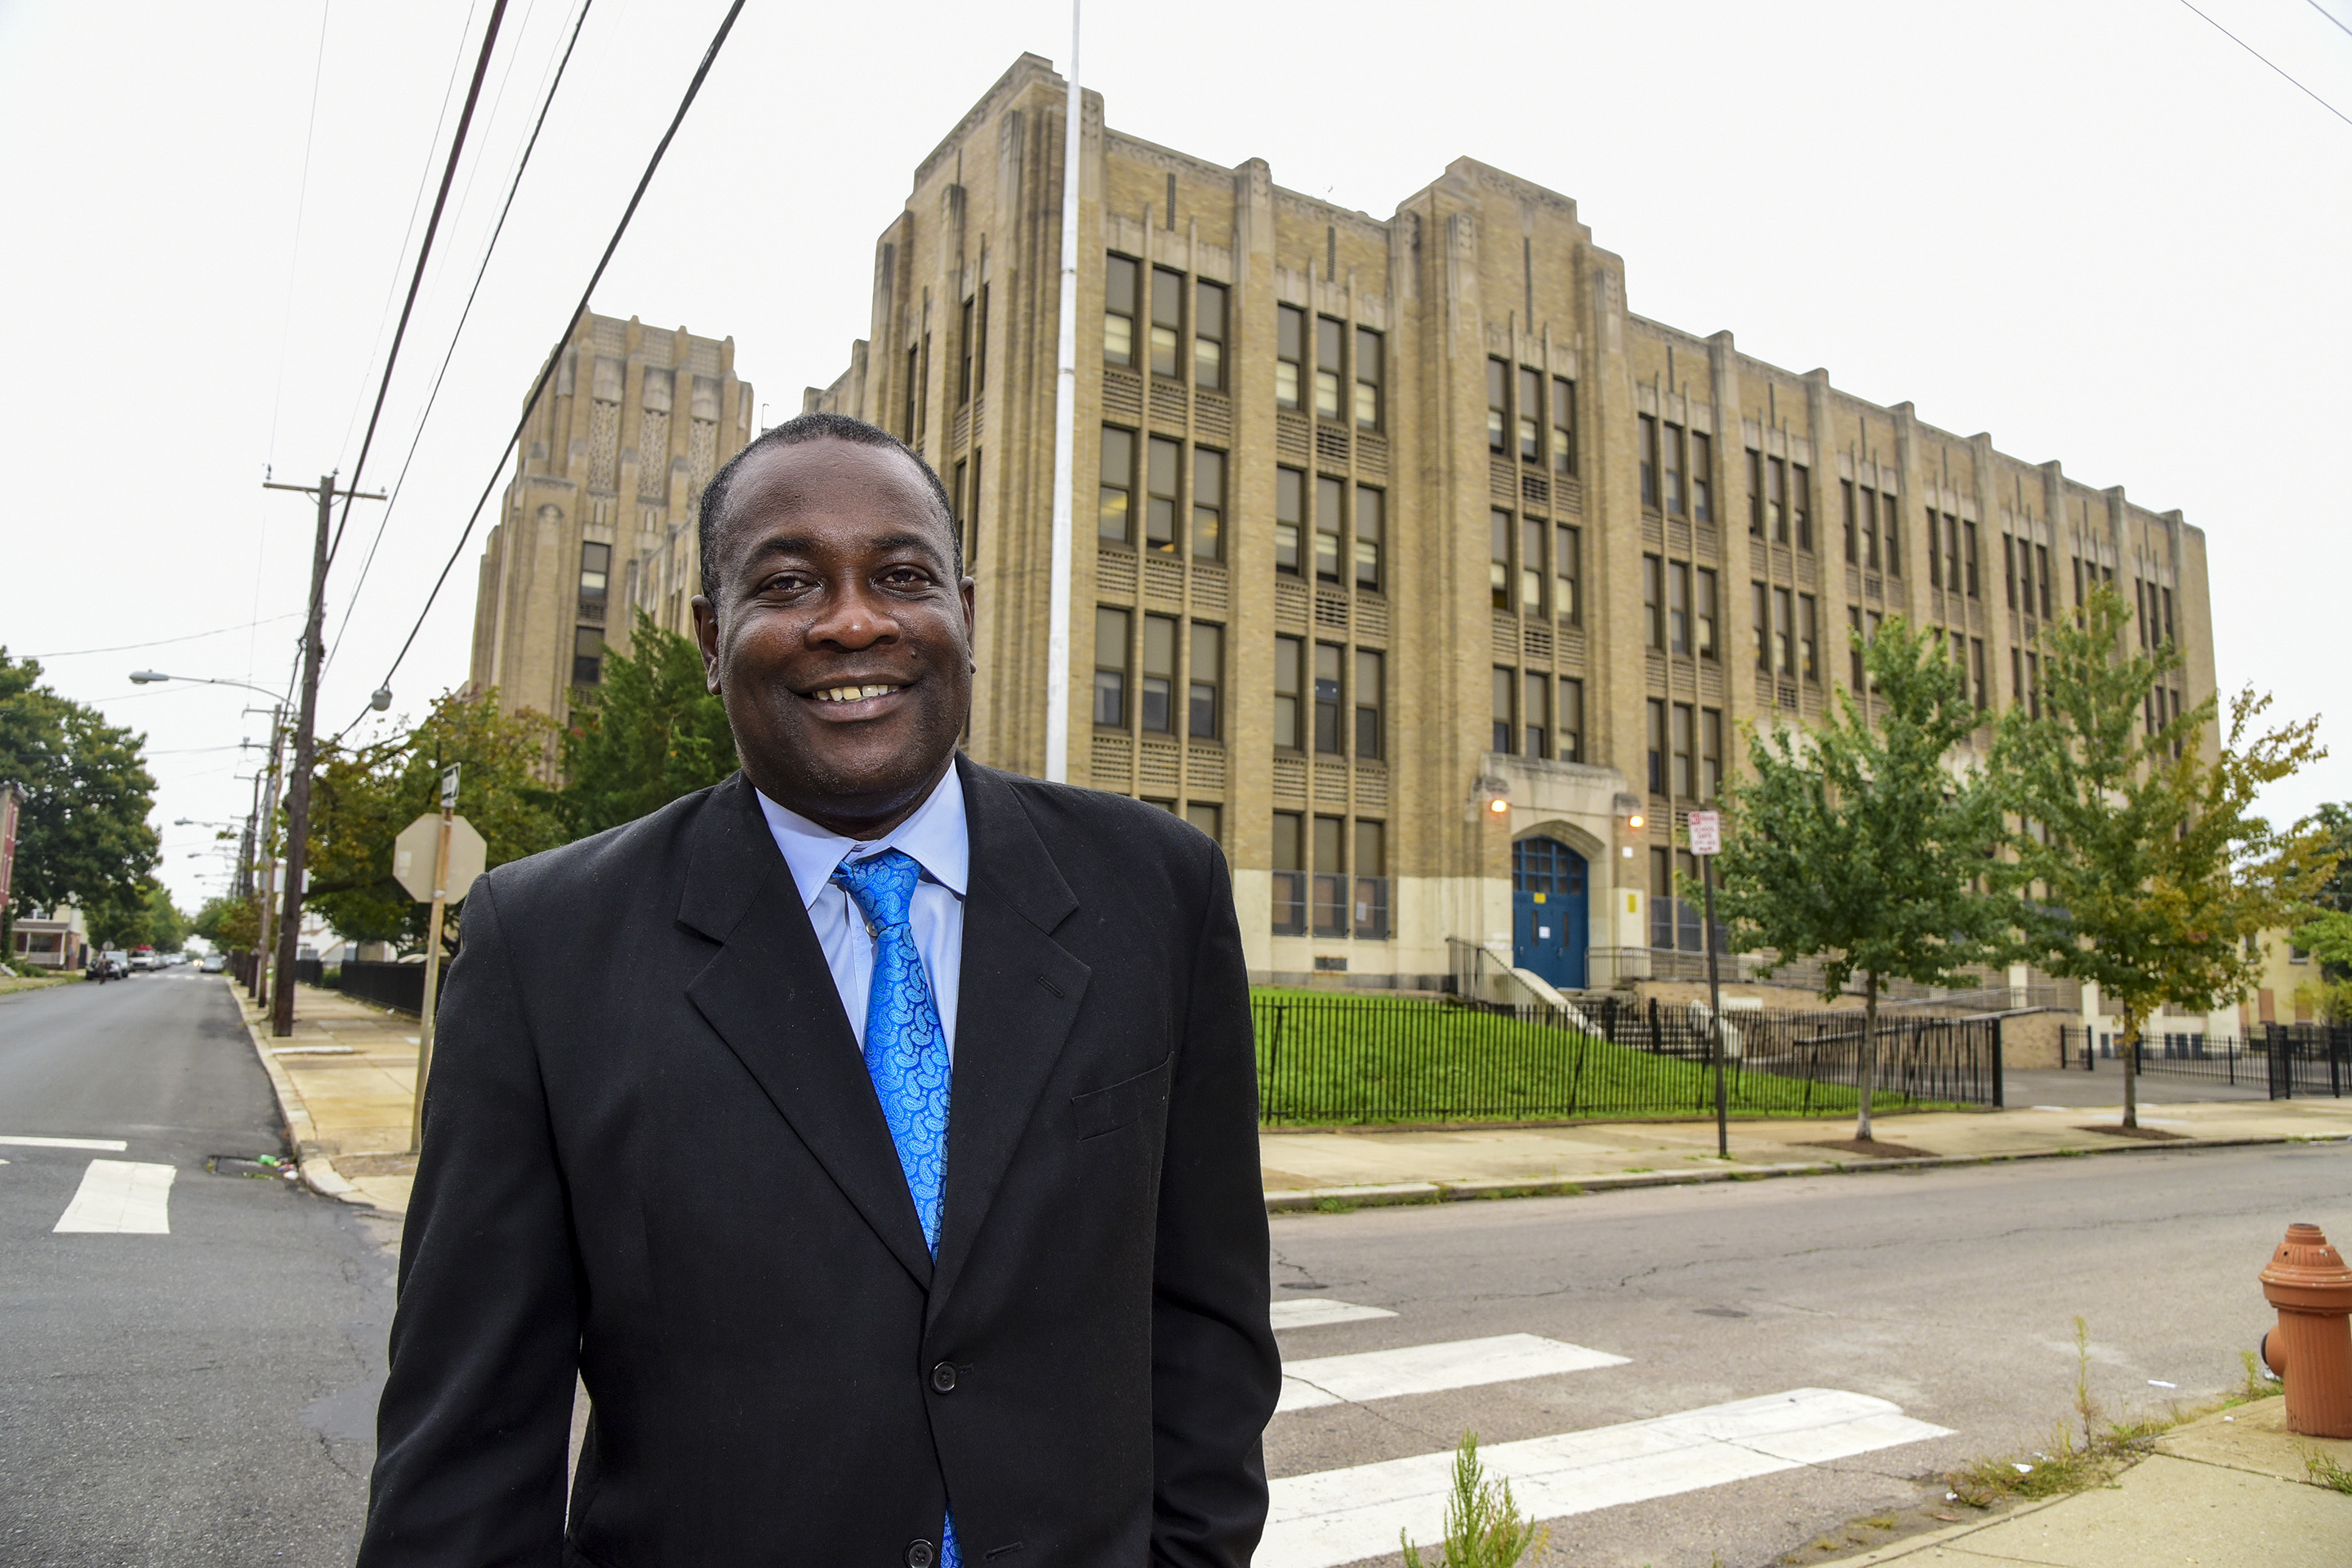 Philadelphia Housing Authority President Kelvin Jeremiah stands outside Vaux Big Picture High School, which PHA bought and is investing millions in as part of a plan to transform Sharswood.